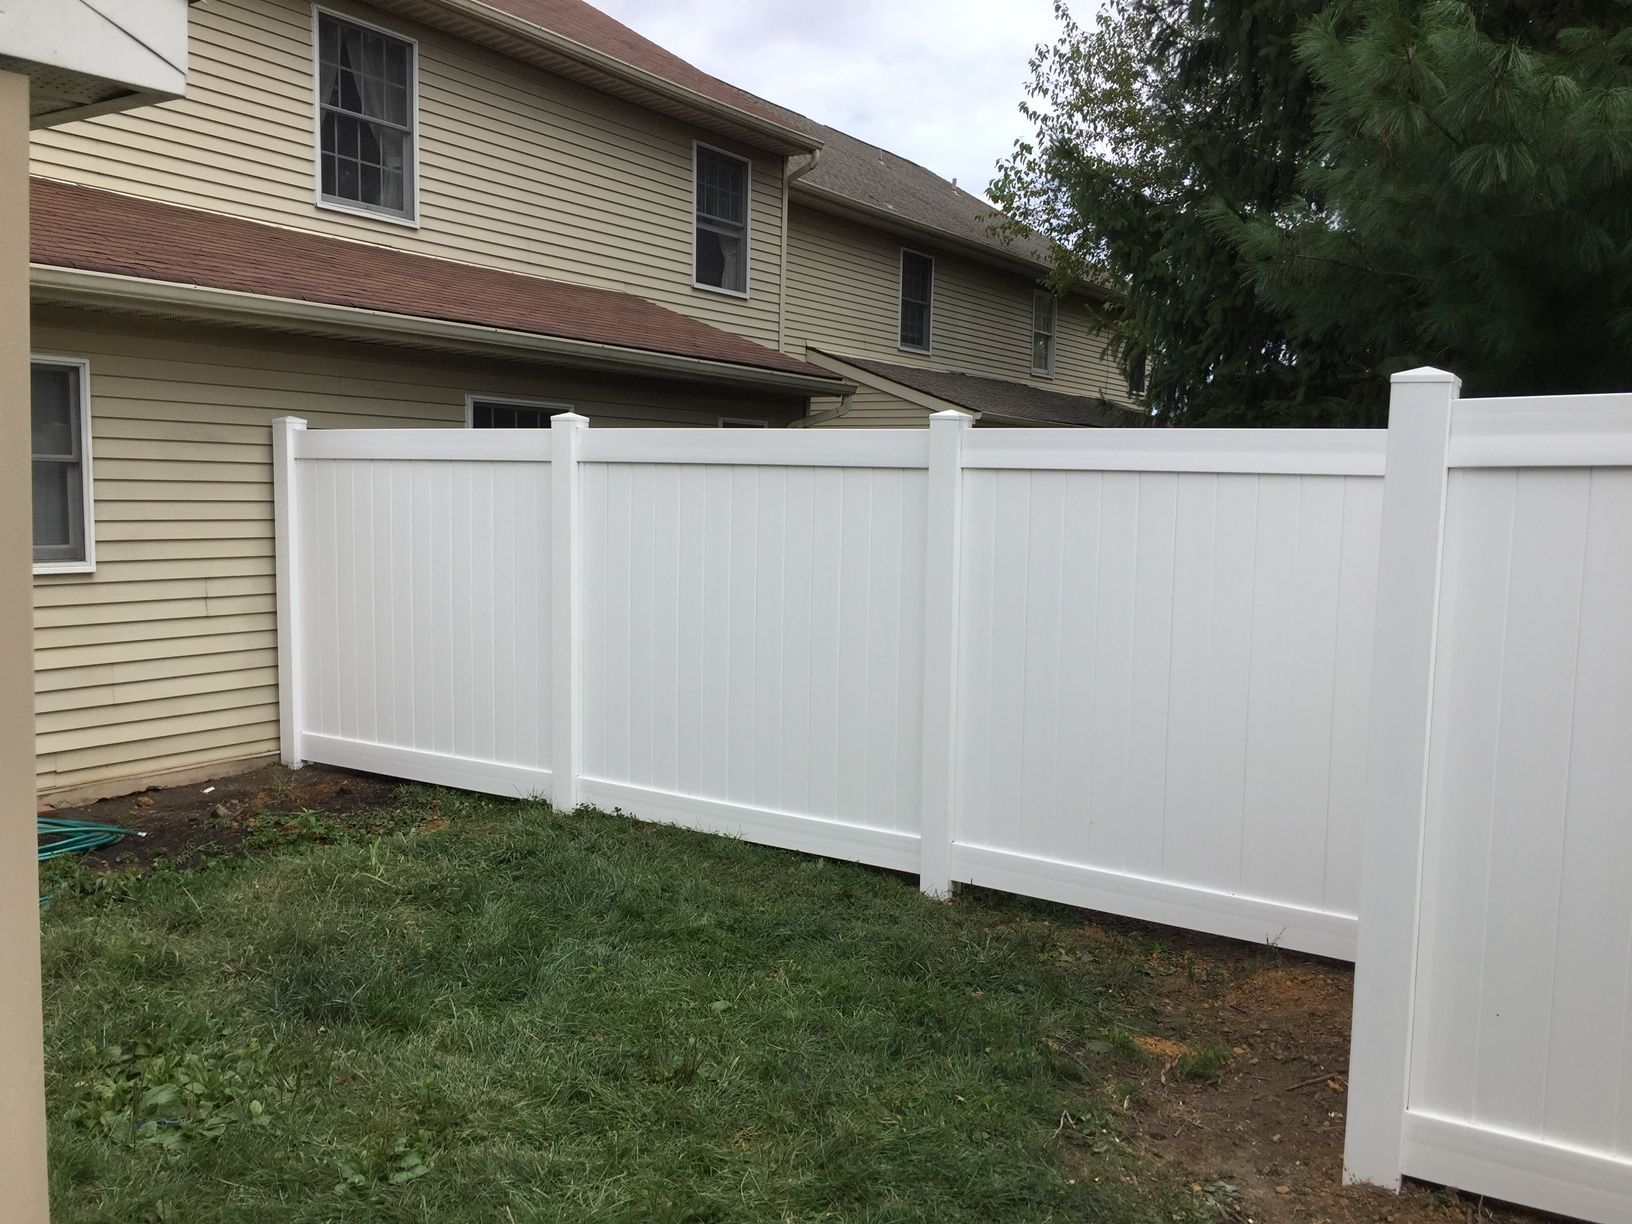 Traditional White Vinyl Privacy Fence Style Oklahoma Installed By Ryan And His Crew From Triborofence Vinylpriv Vinyl Privacy Fence Fence Styles Vinyl Fence